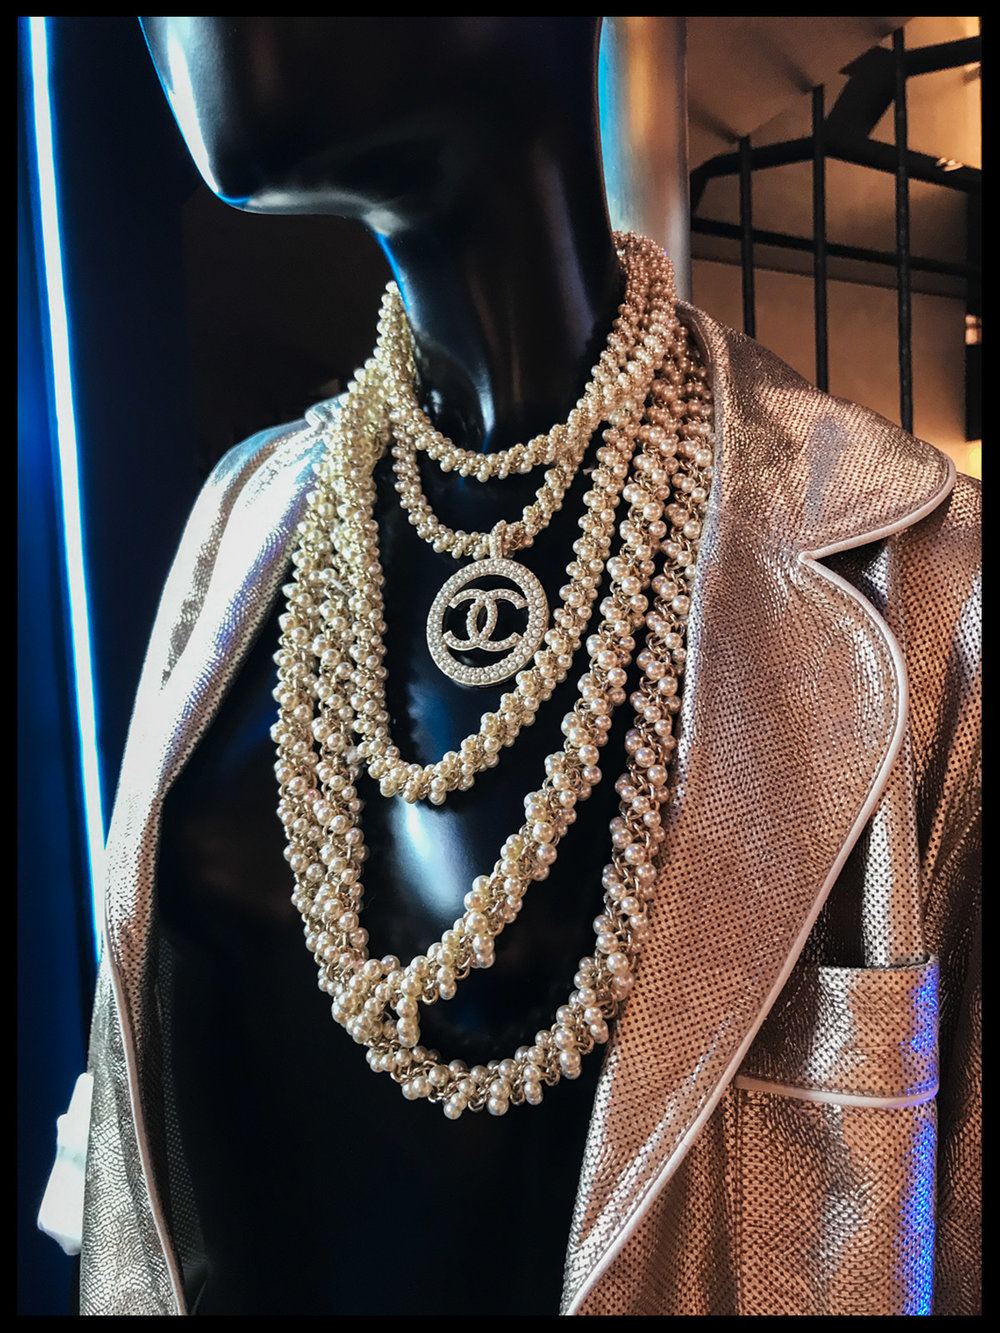 Stylesnooperdan-Chanel-at-Marais-Melbourne-5.jpg